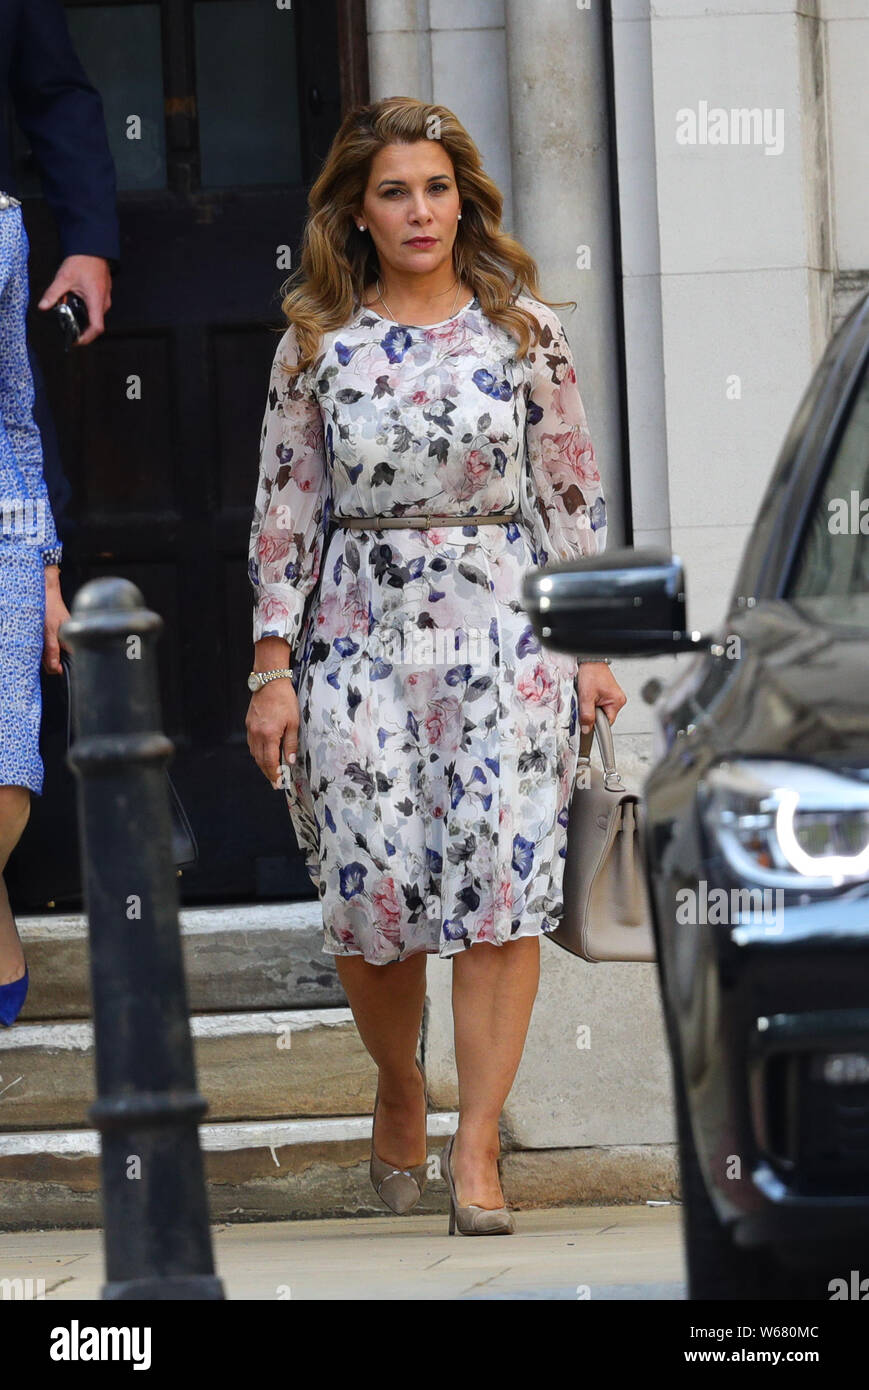 Princess Haya Bint Al Hussein leaves the Royal Courts of